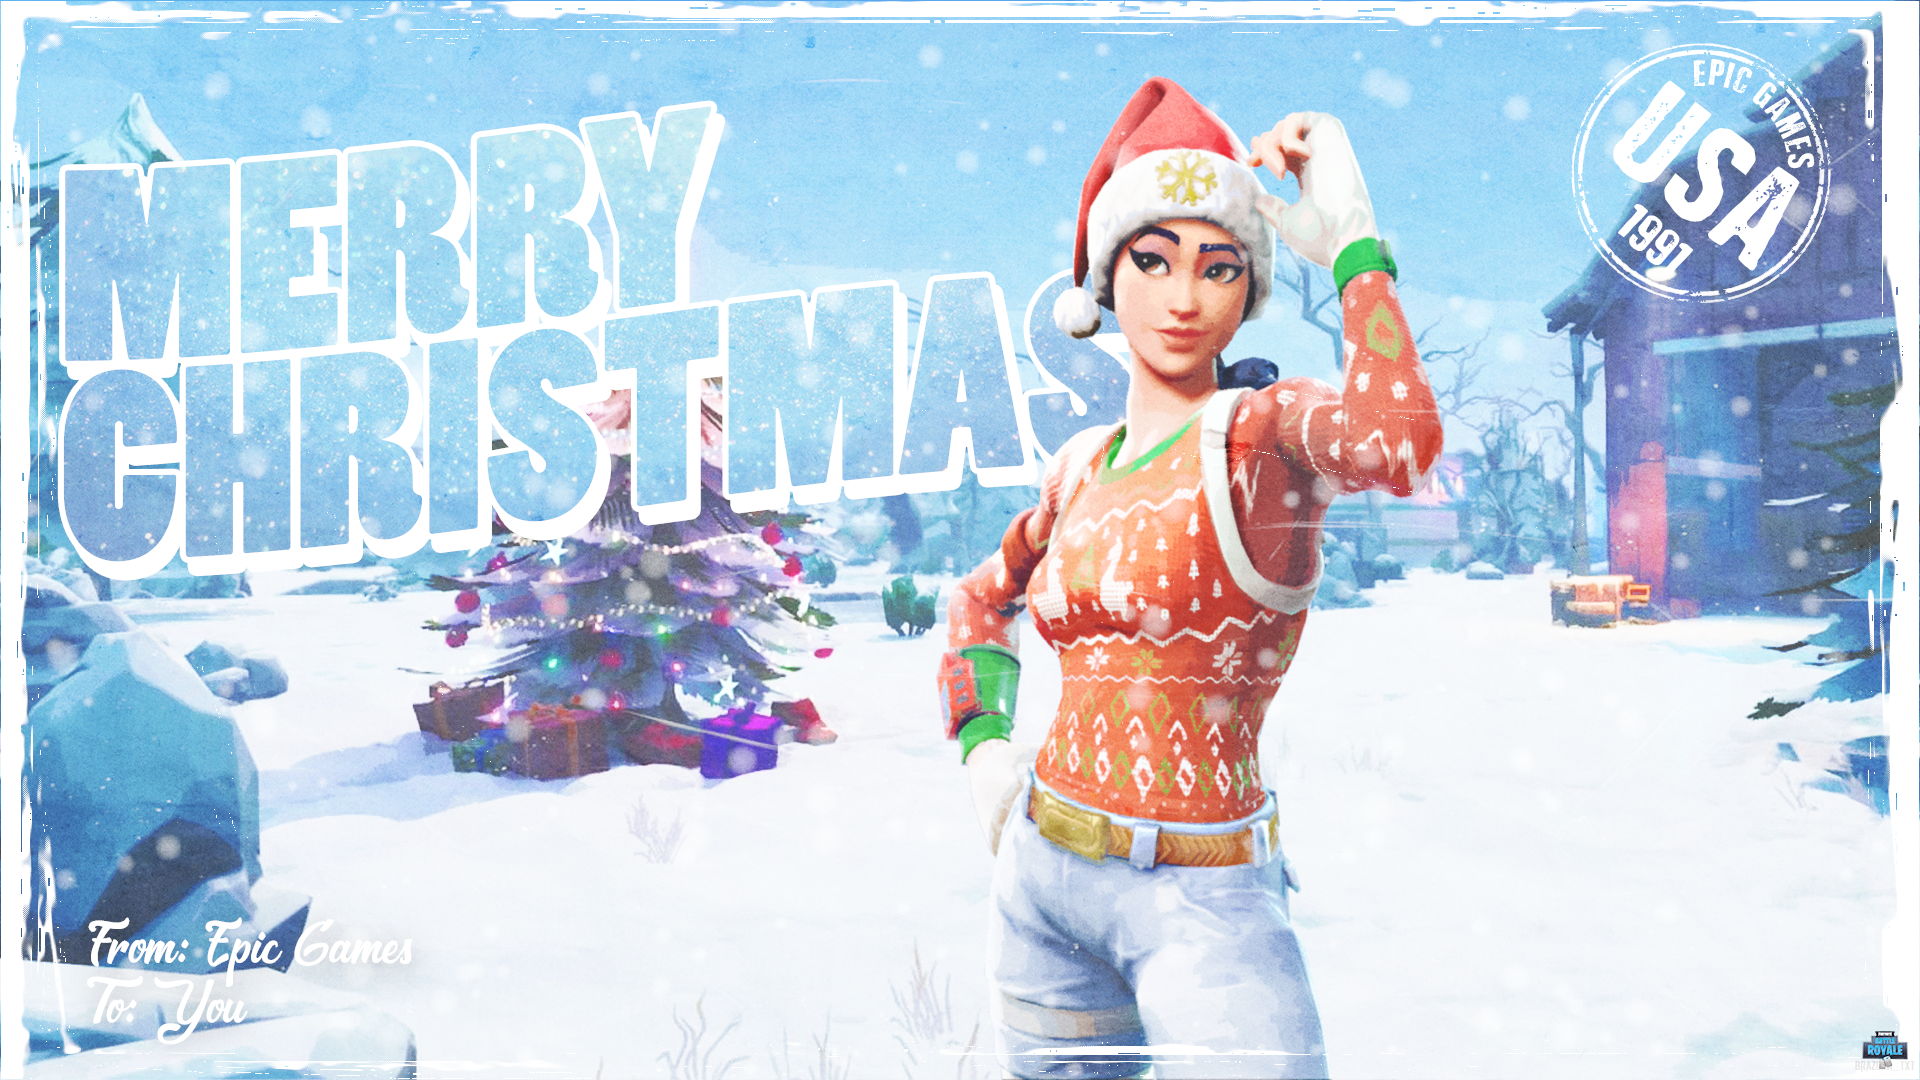 Its always Christmas in Fortnite 1080p Wallpaper FortNiteBR 1920x1080